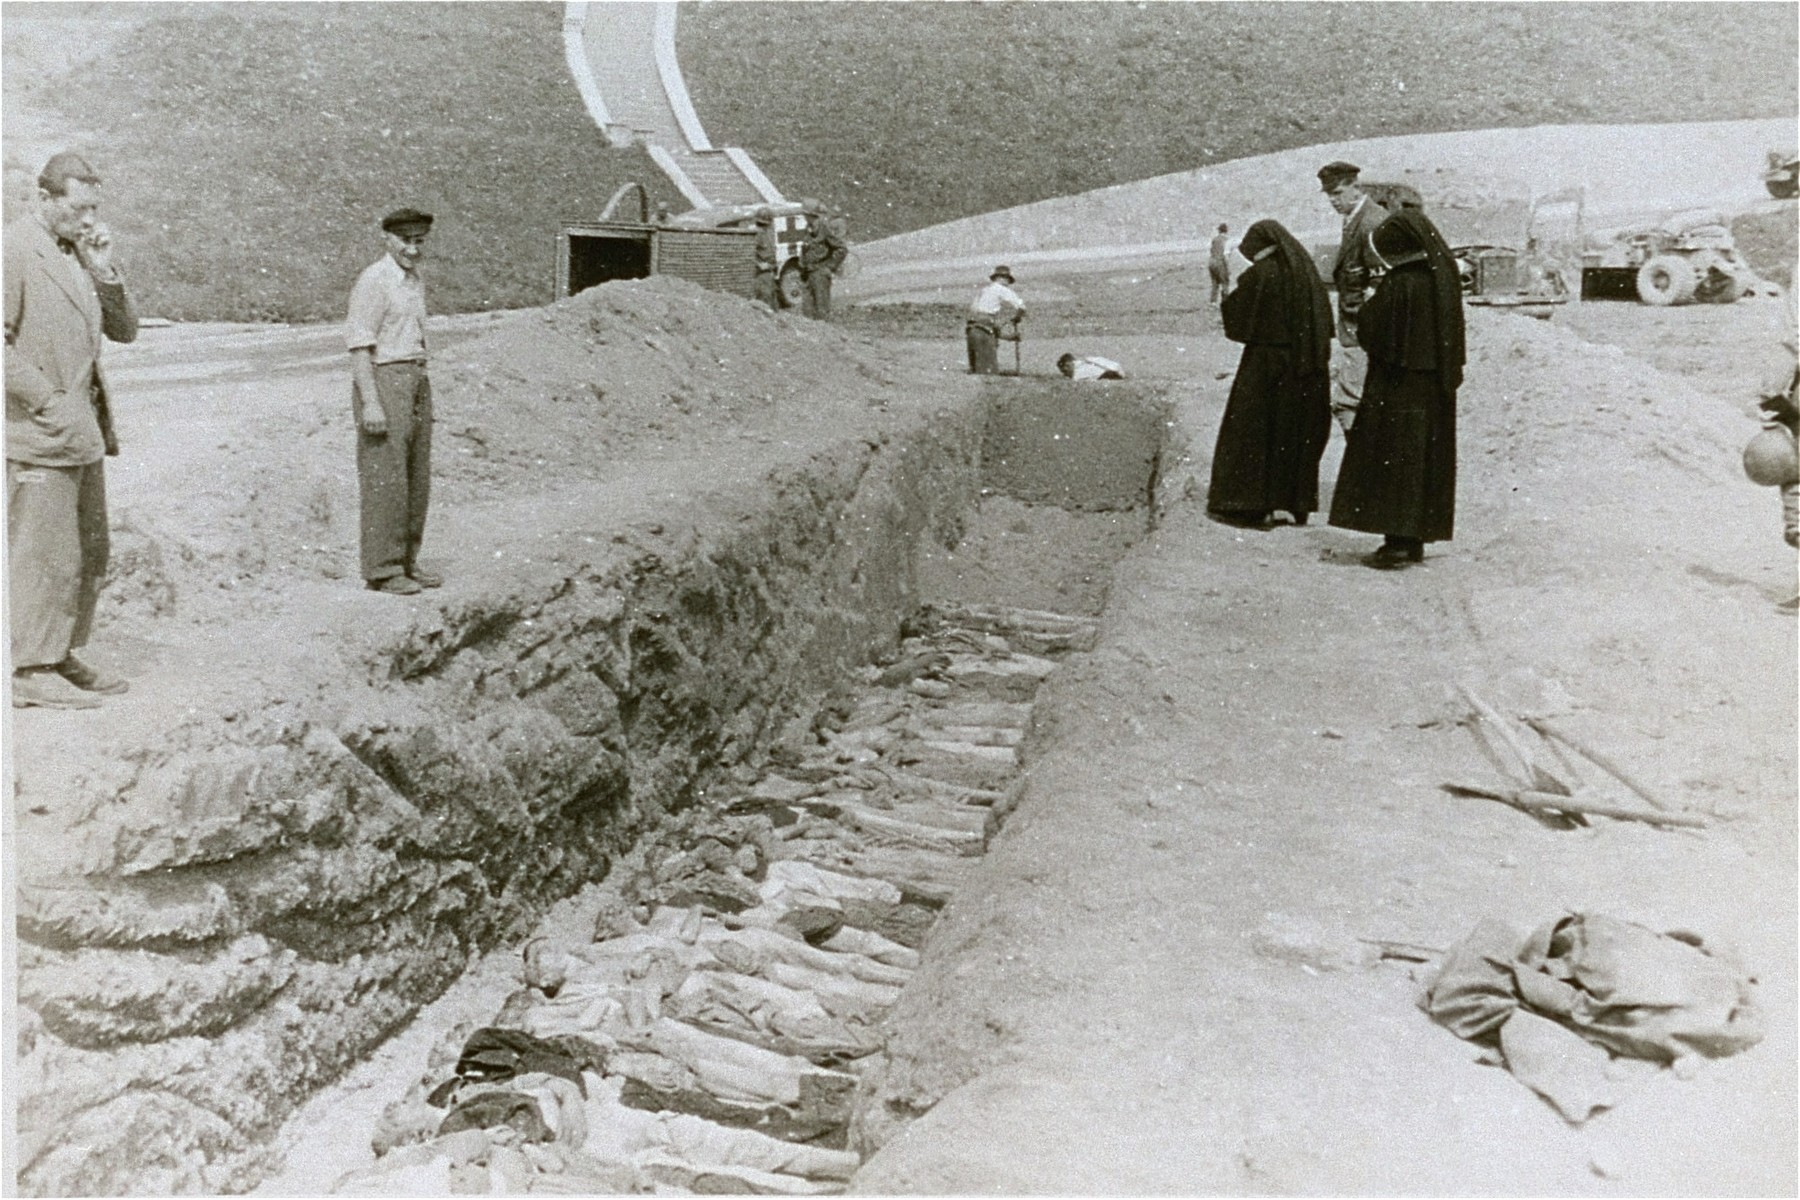 Nuns from a nearby convent view the bodies of former inmates in an open mass grave that has been prepared by Austrian civilians at the Mauthausen concentration camp.